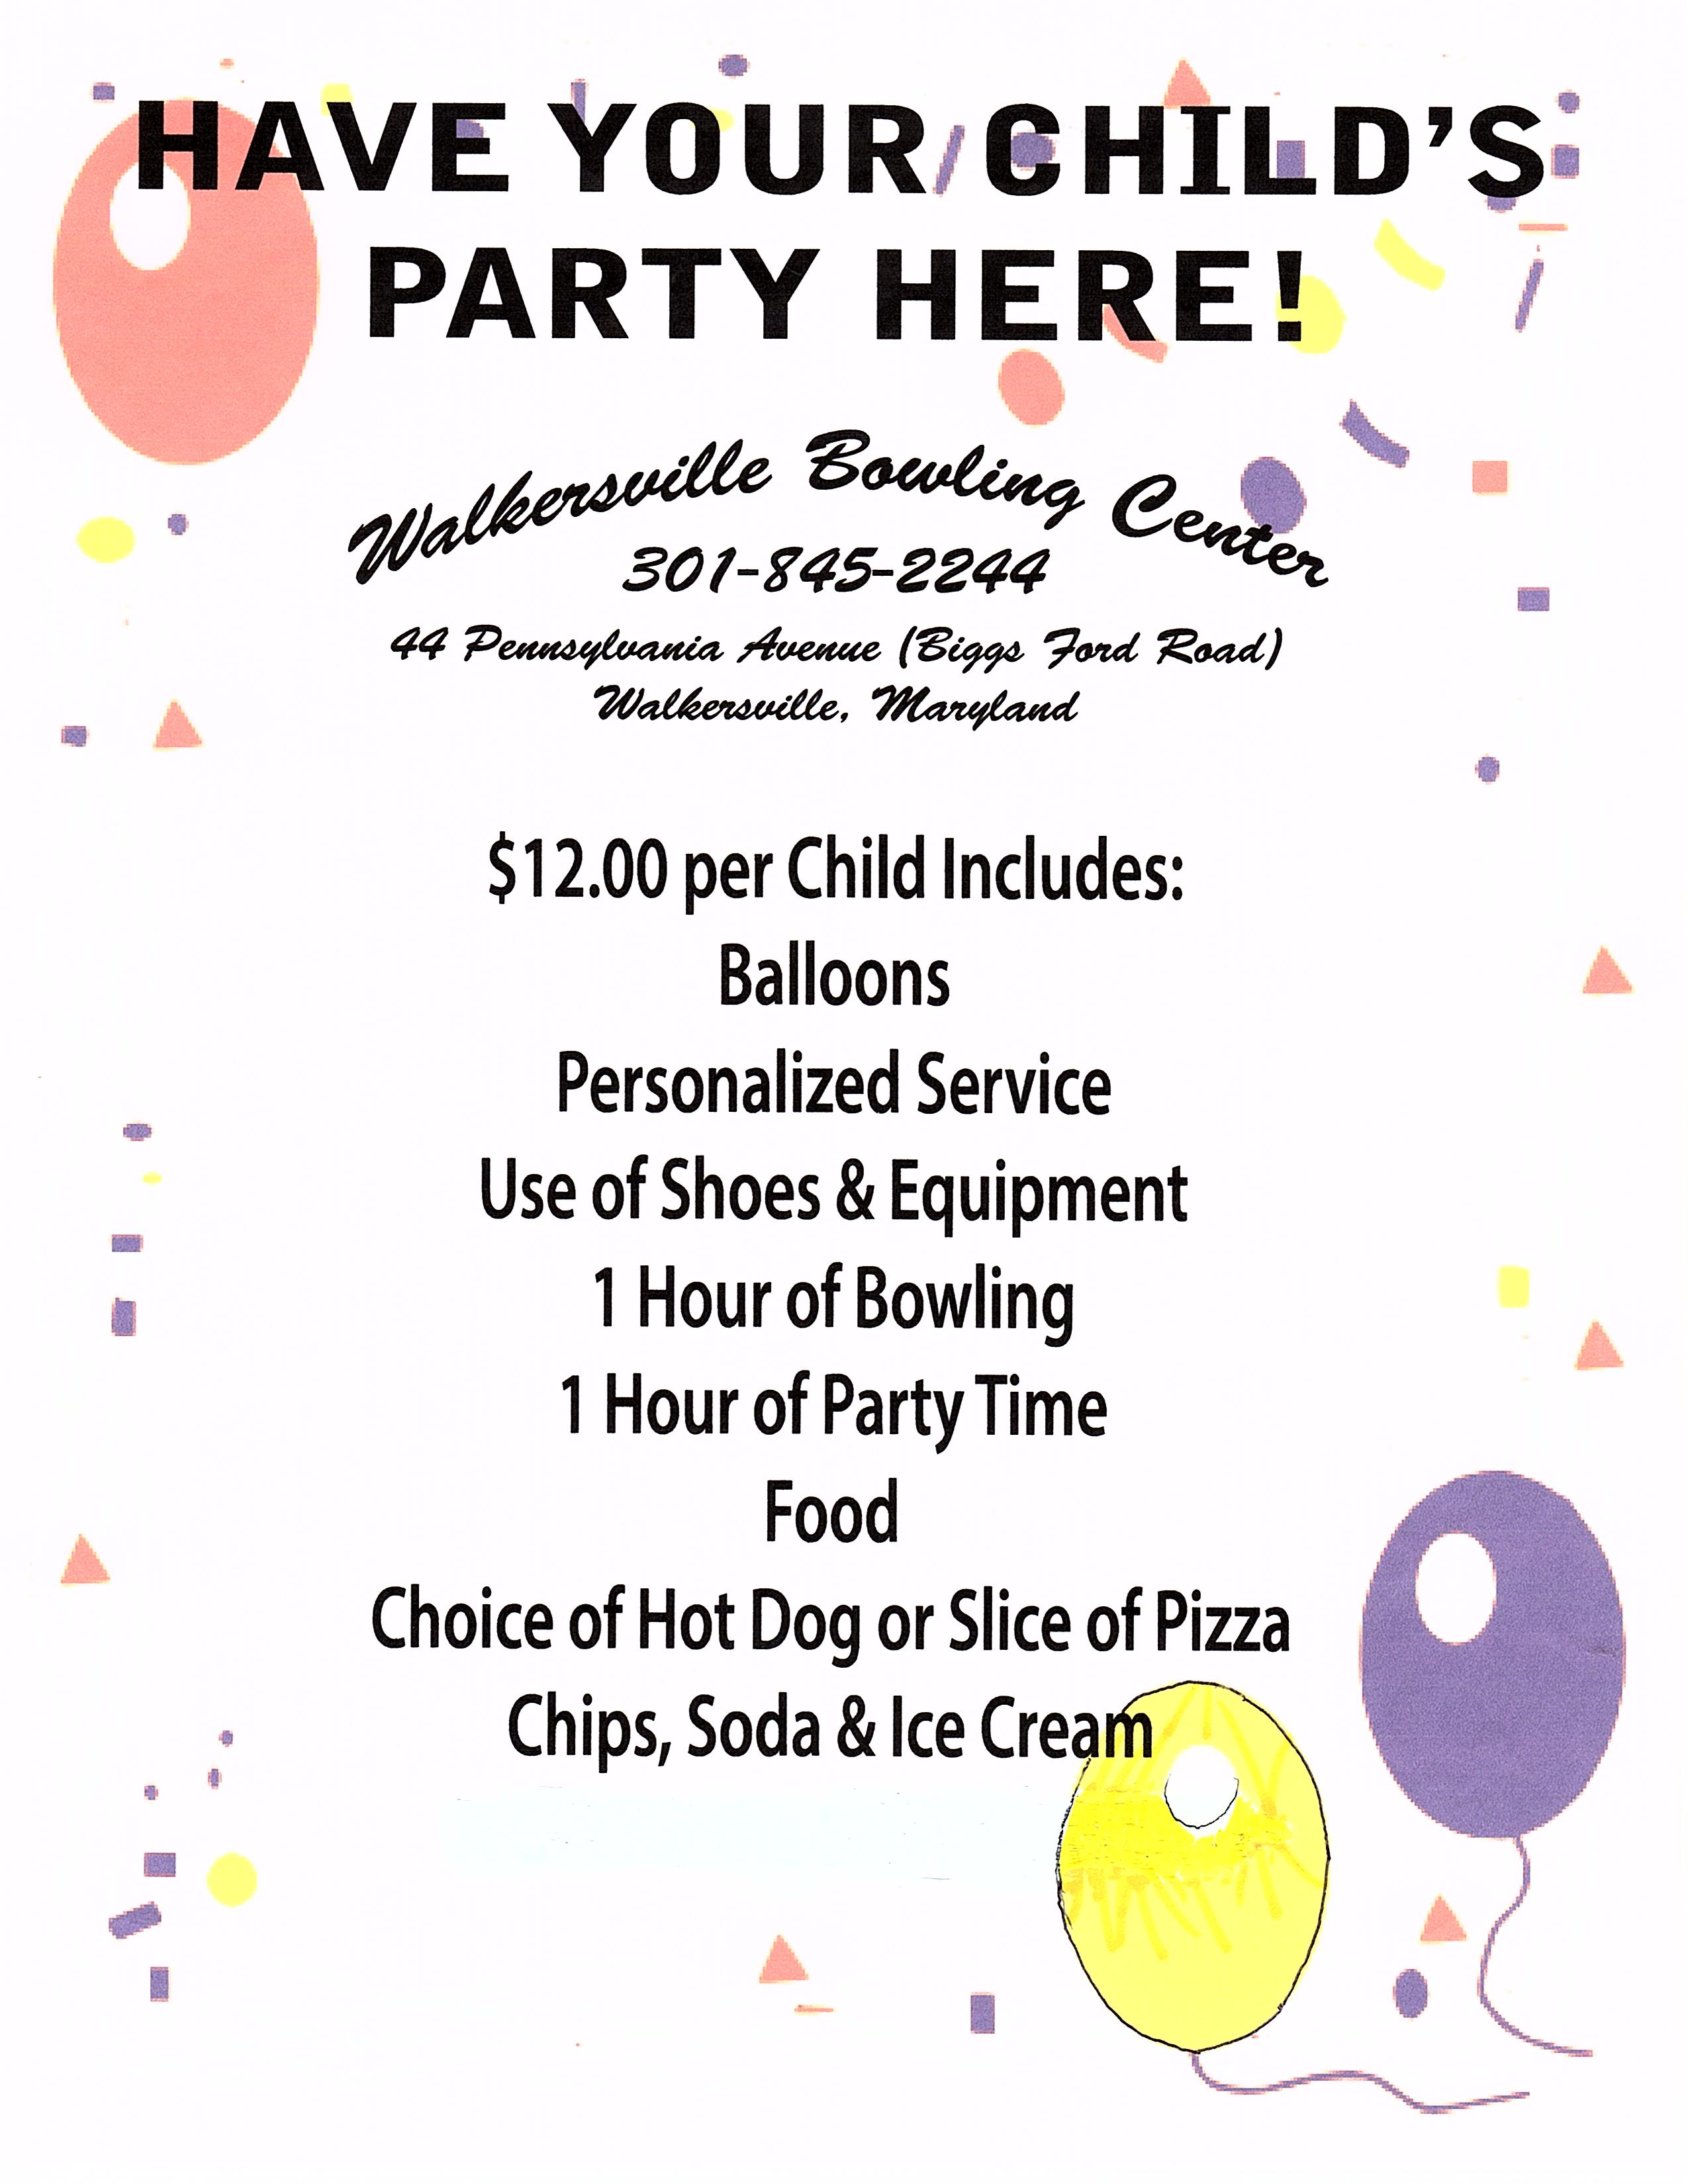 Birthday Party Ideas | Kids Parties | Packages | Frederick MD